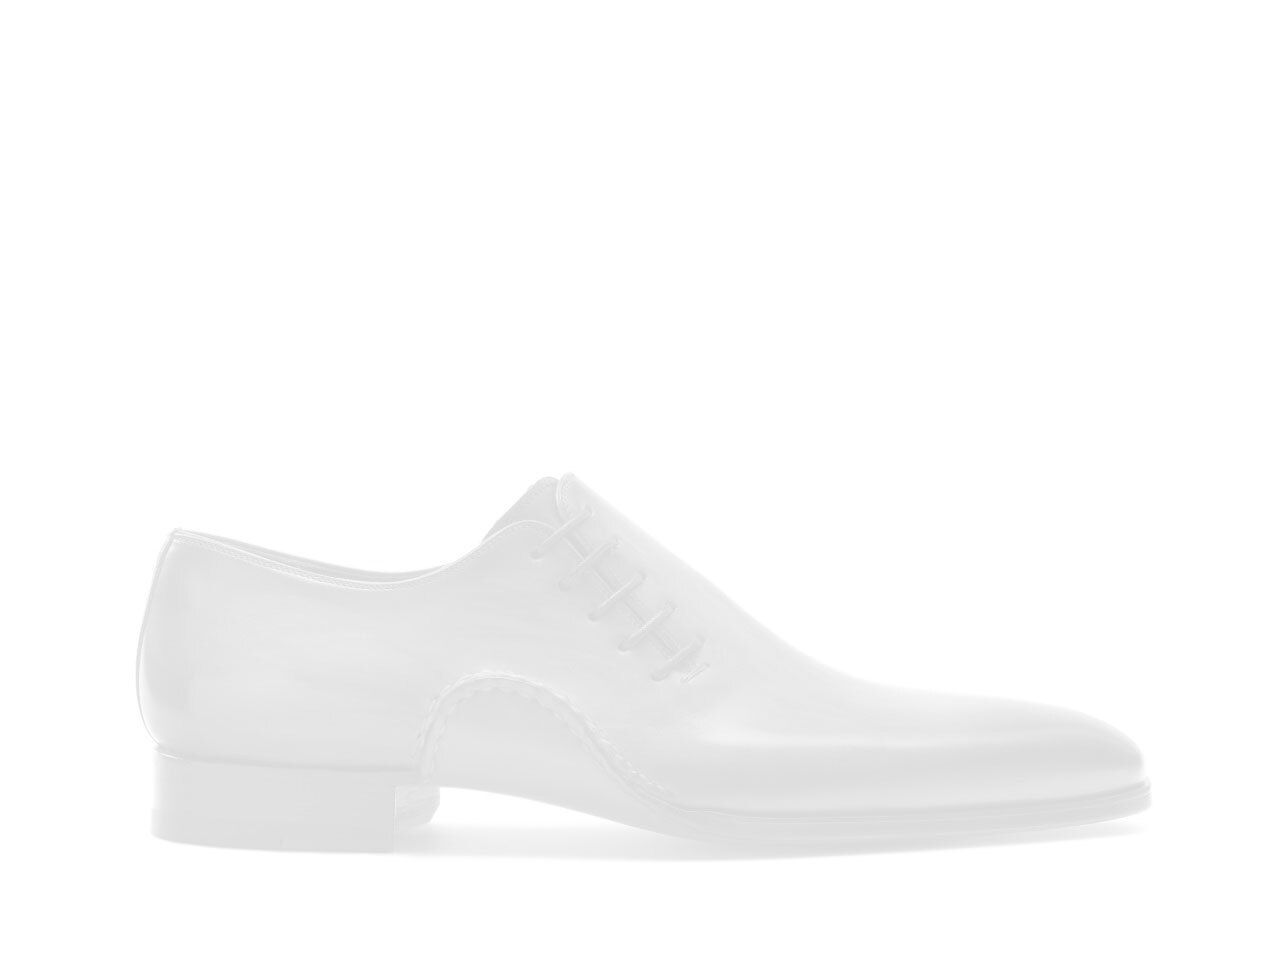 Sole of the Magnanni Elonso Lo White and Taupe Men's Sneakers